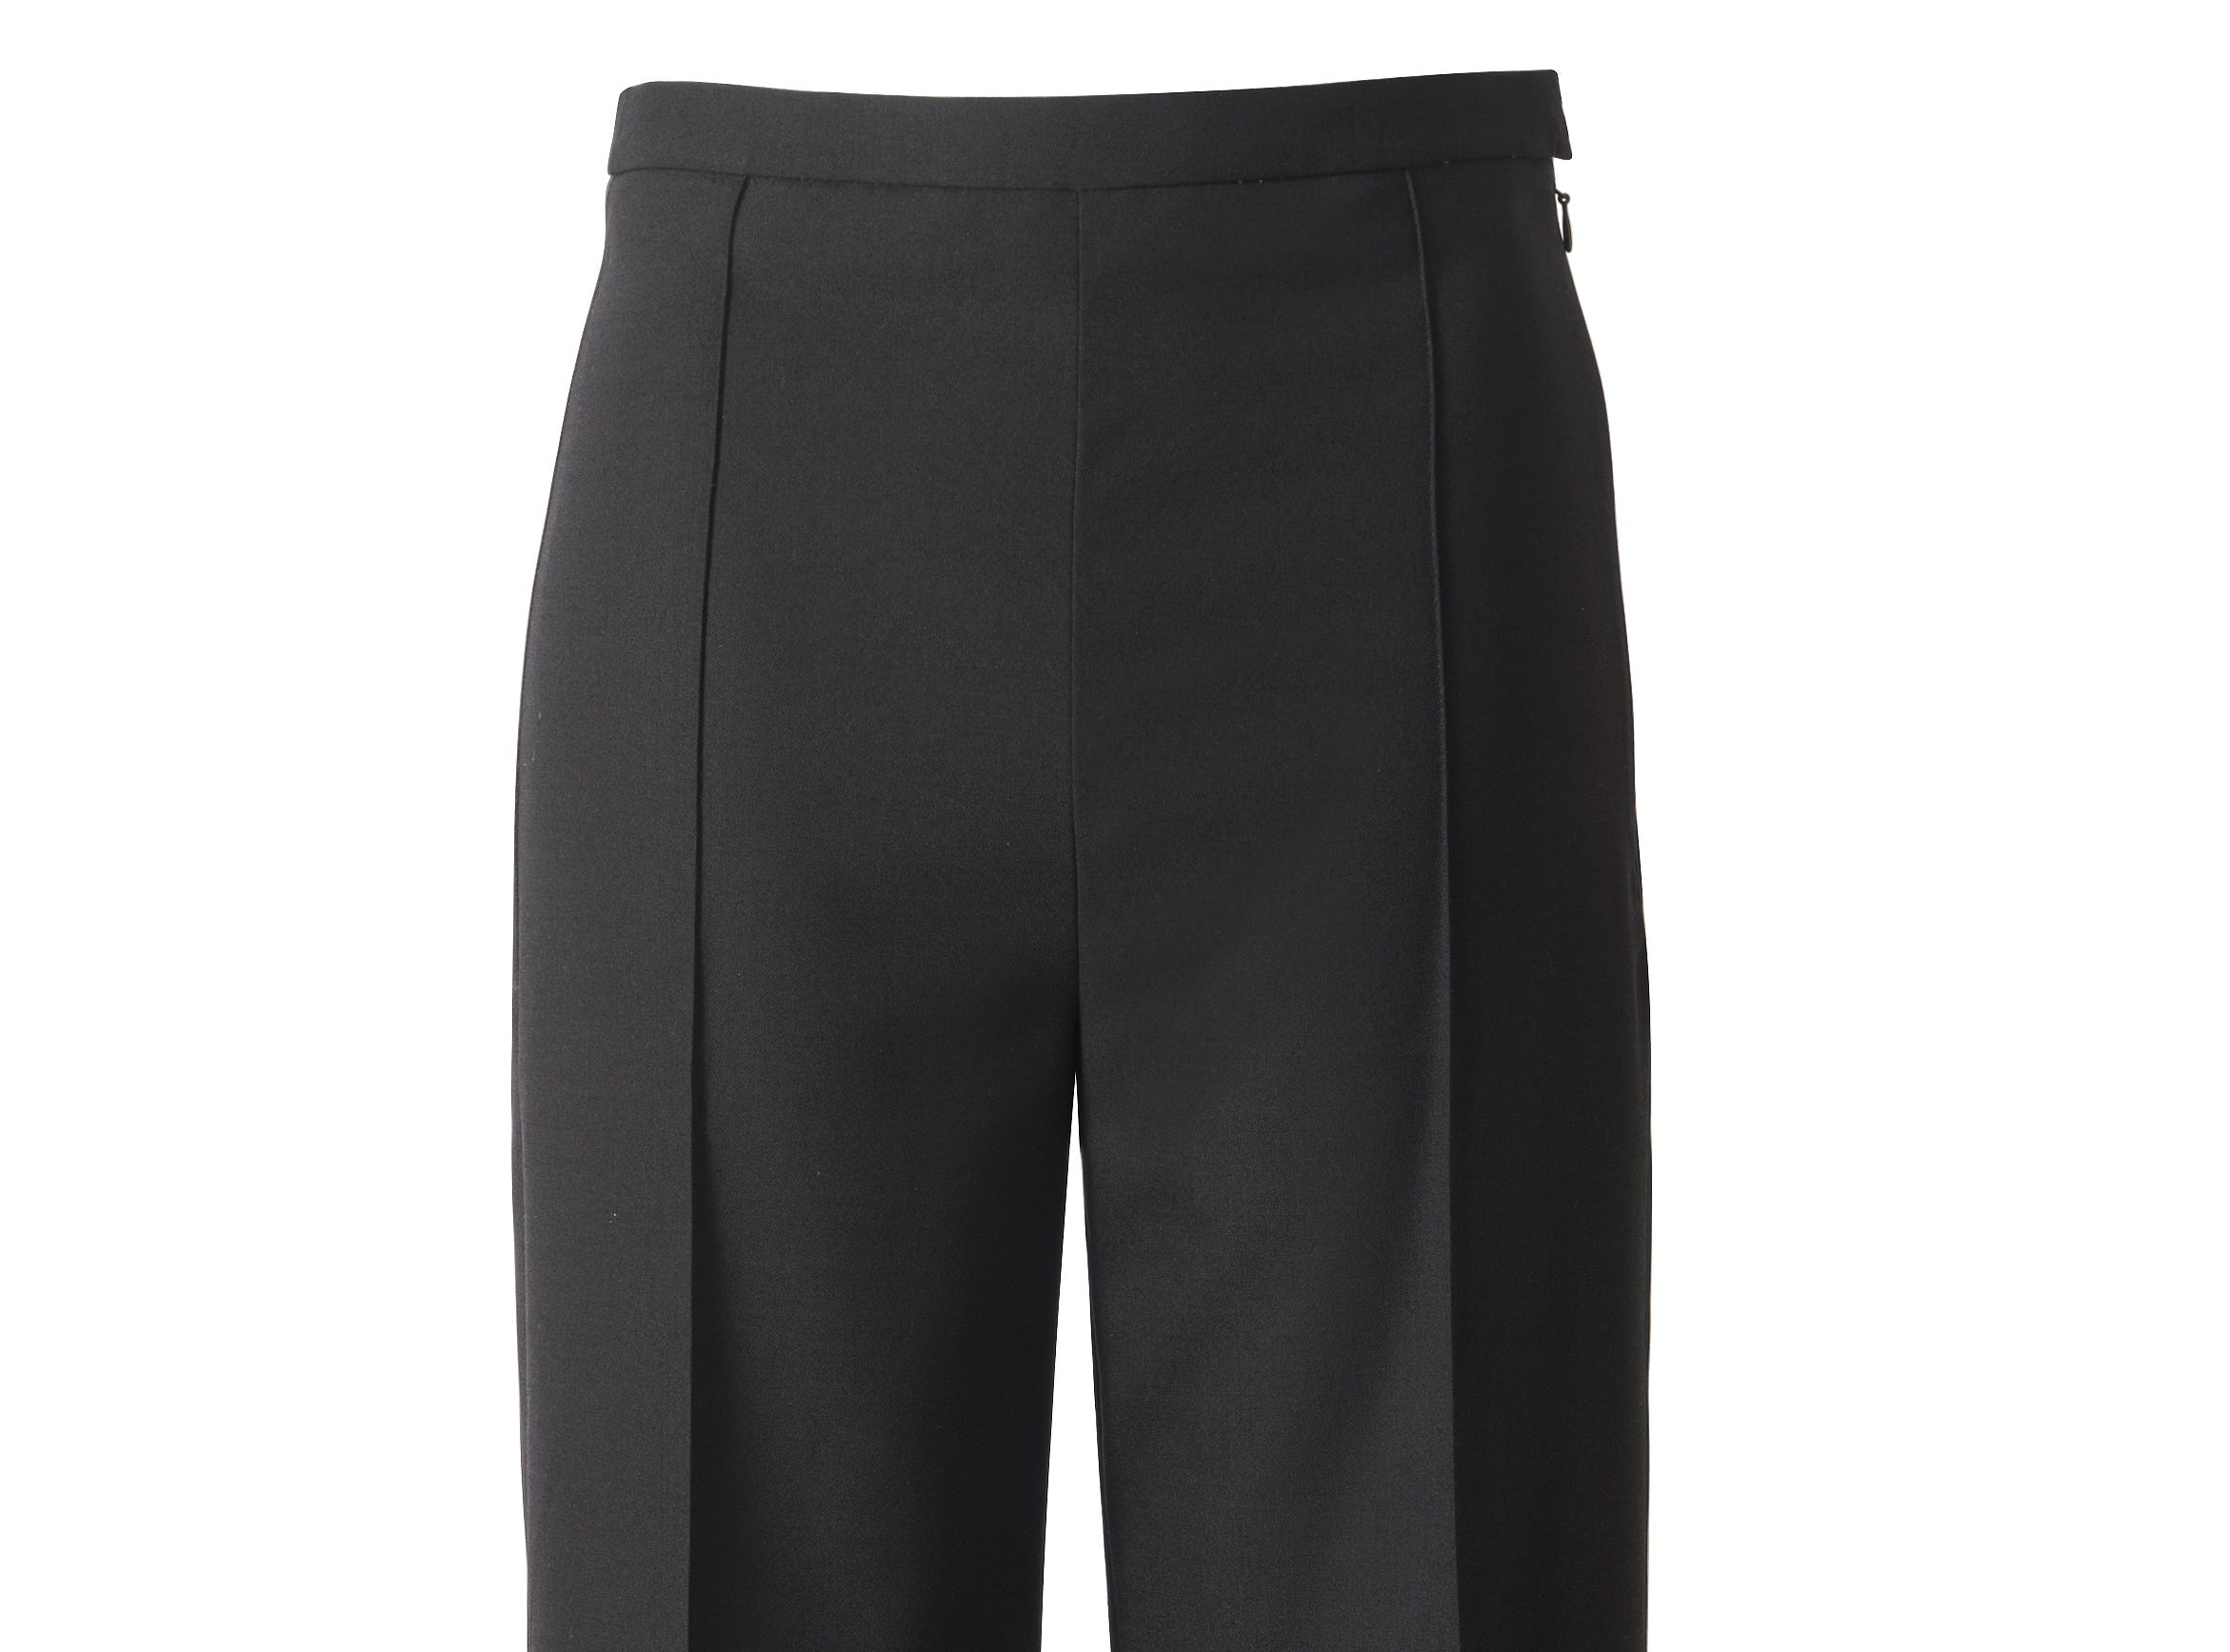 These trousers from H&M's Conscious Exclusive collection for autumn and winter are made from a recycled polyester blend. Price: $119.